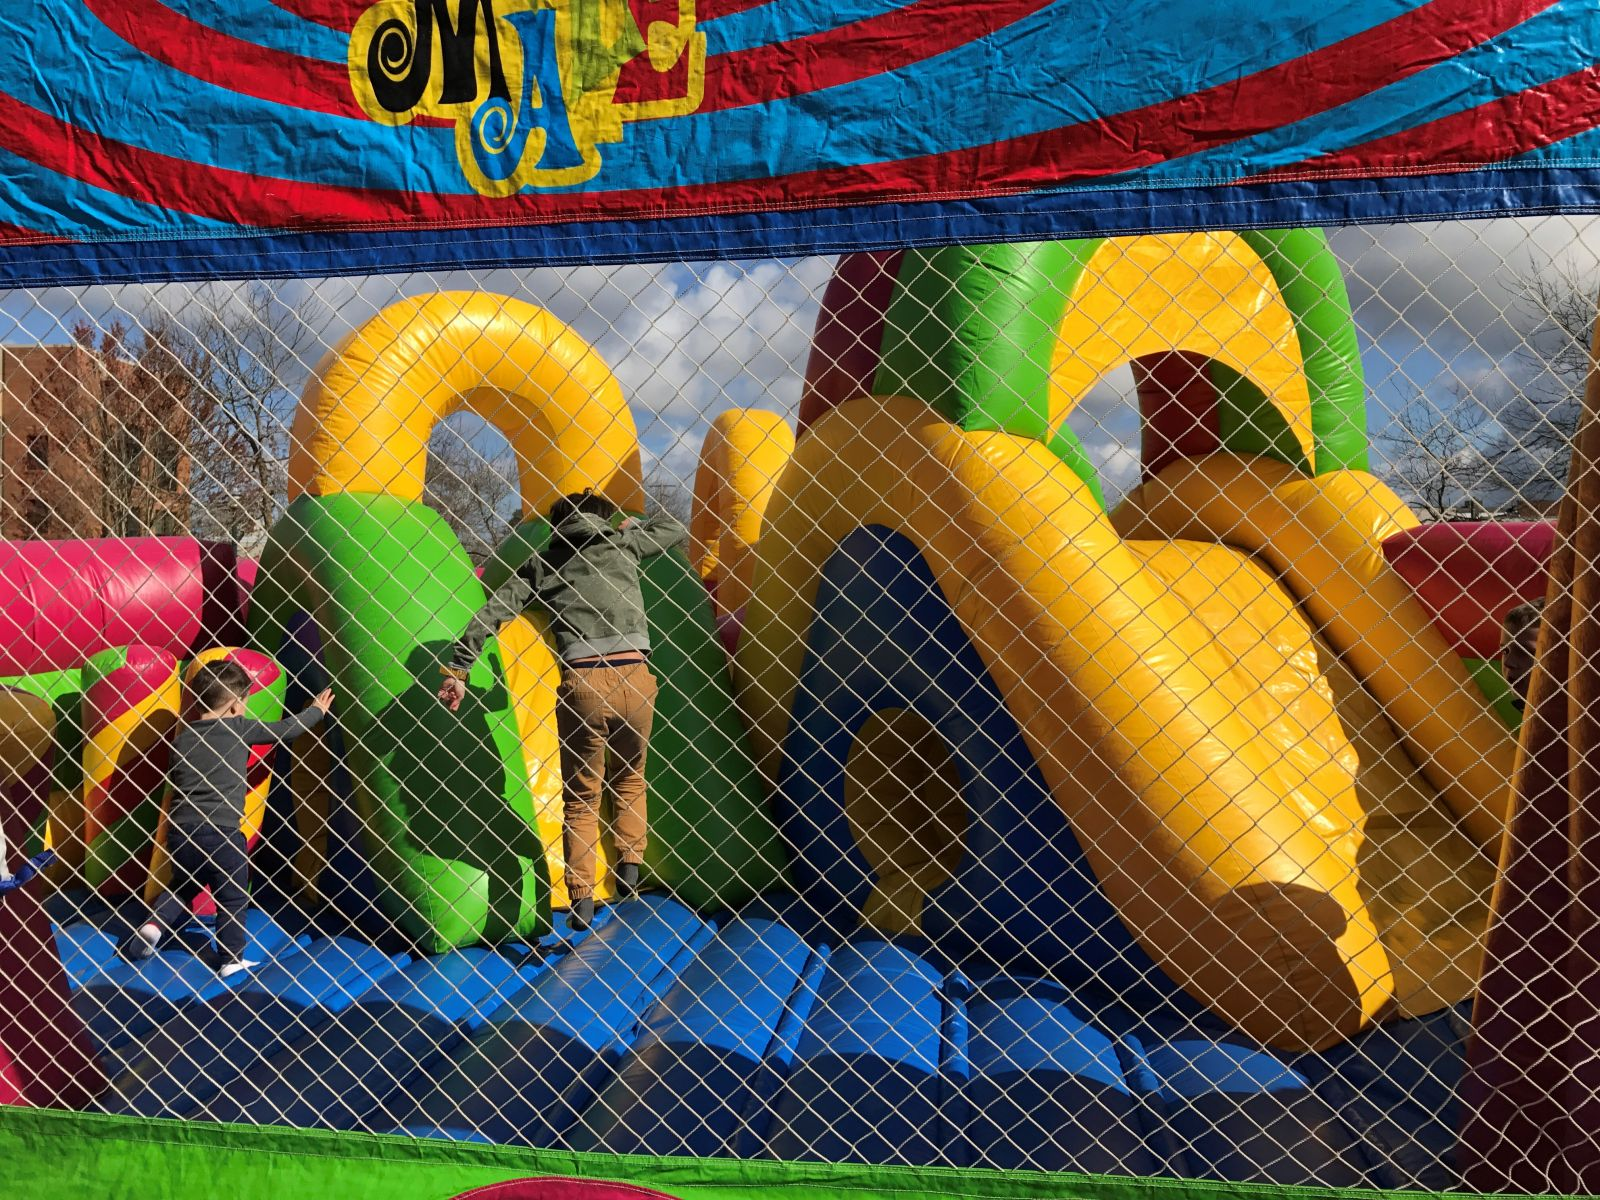 Bouncer Maze 3.0 inflatable bounce house